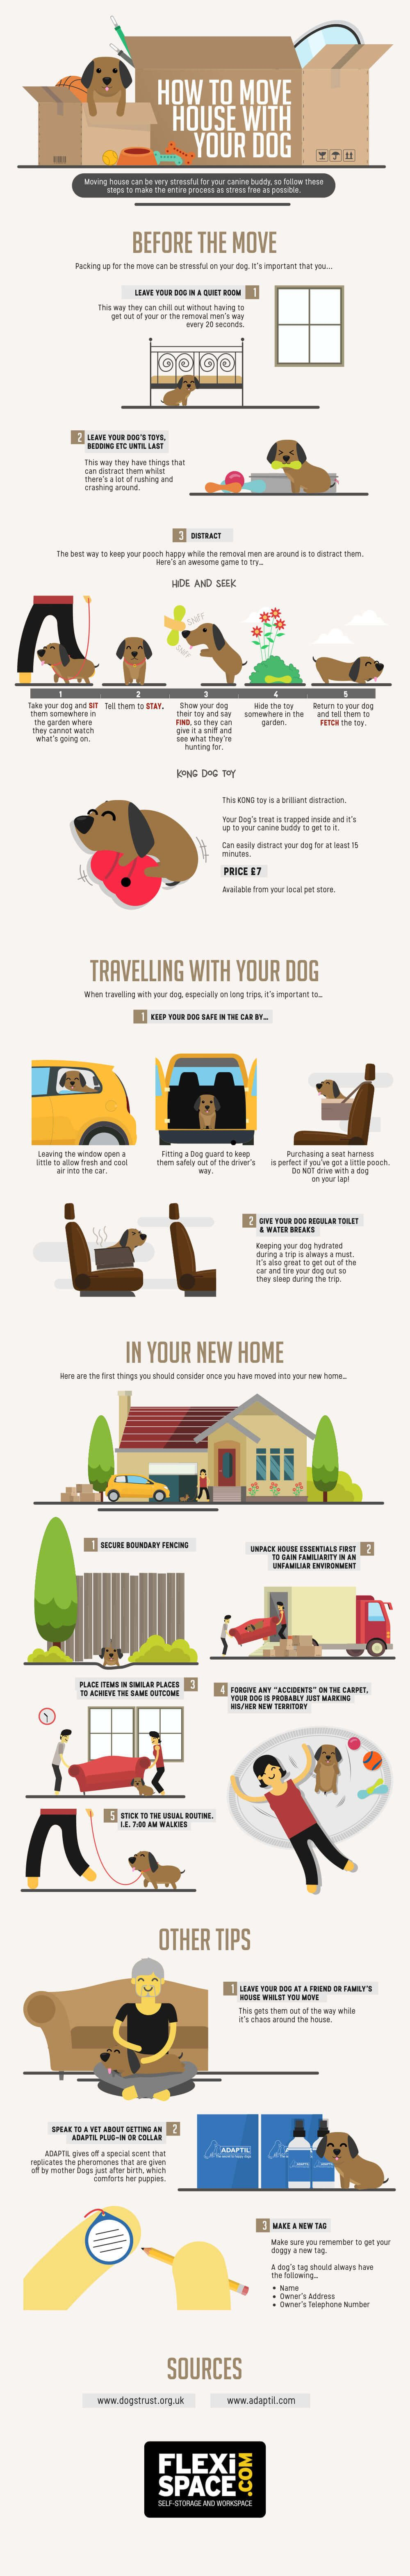 How To Move House With Your Dog #Infographic